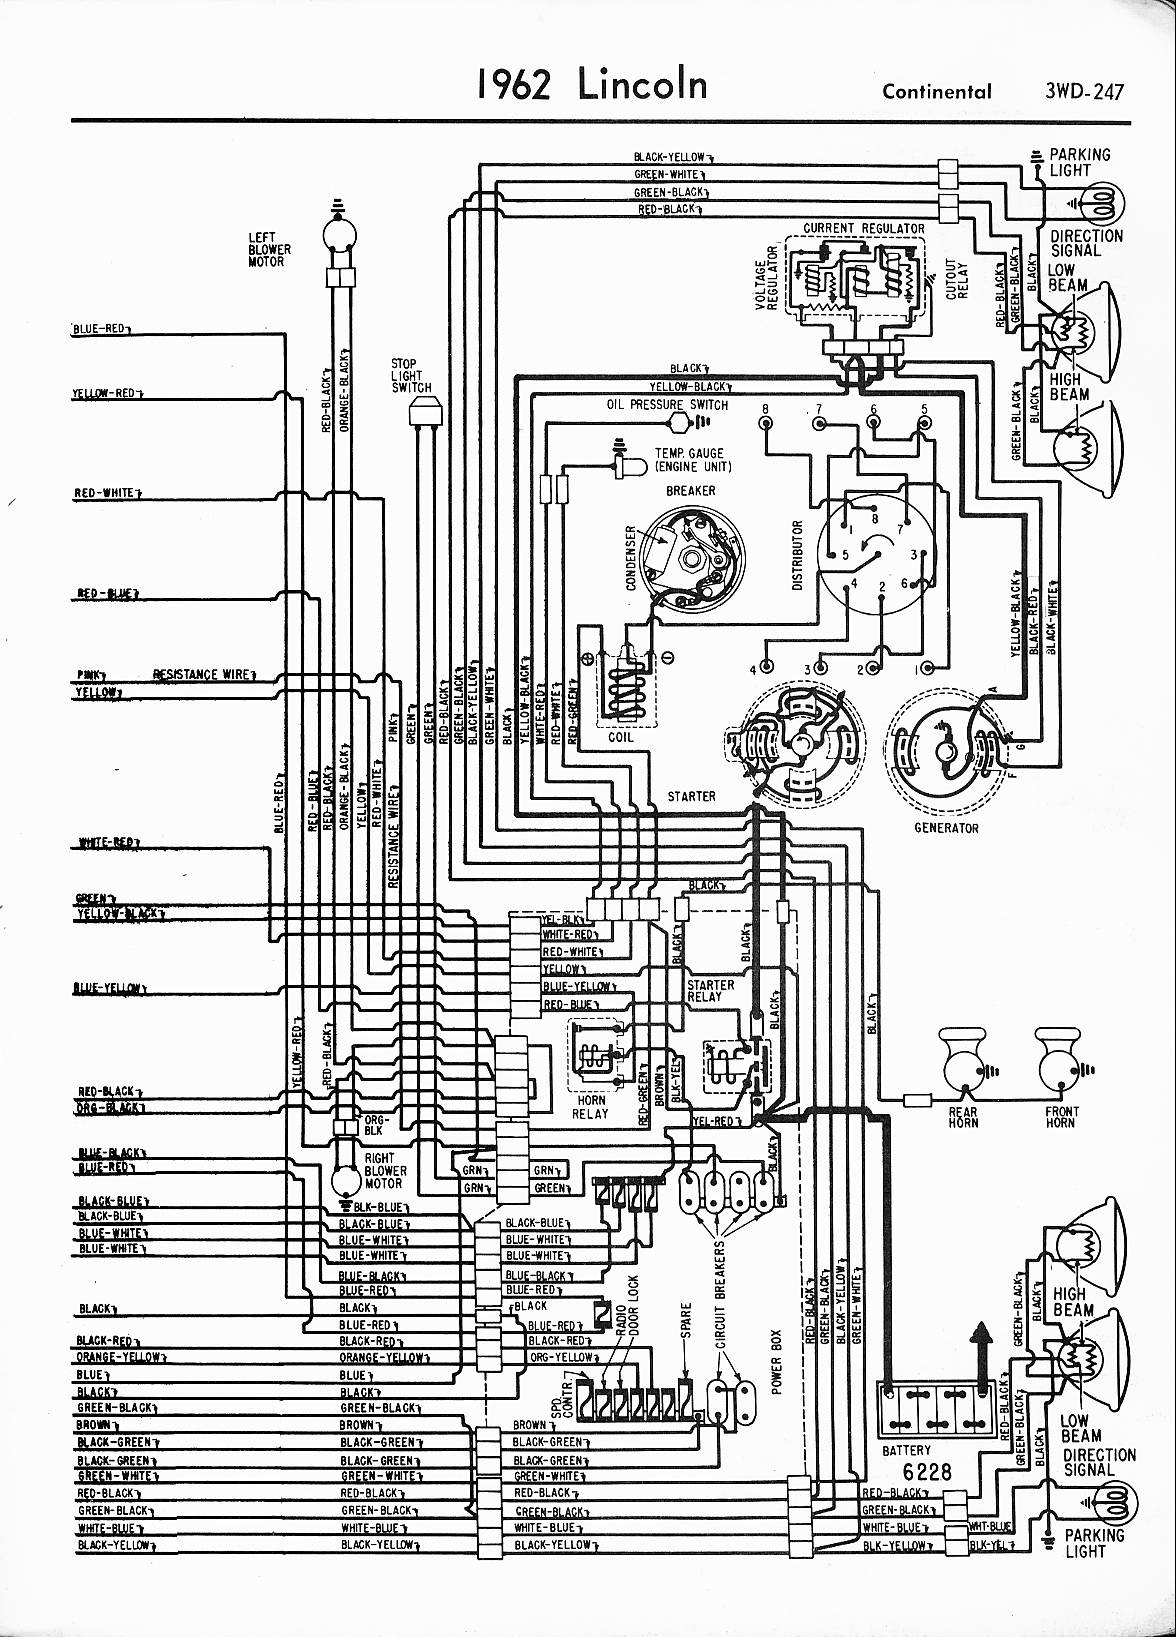 1997 Lincoln Continental Engine Diagram Wiring Library 1996 F150 1962 Left Half